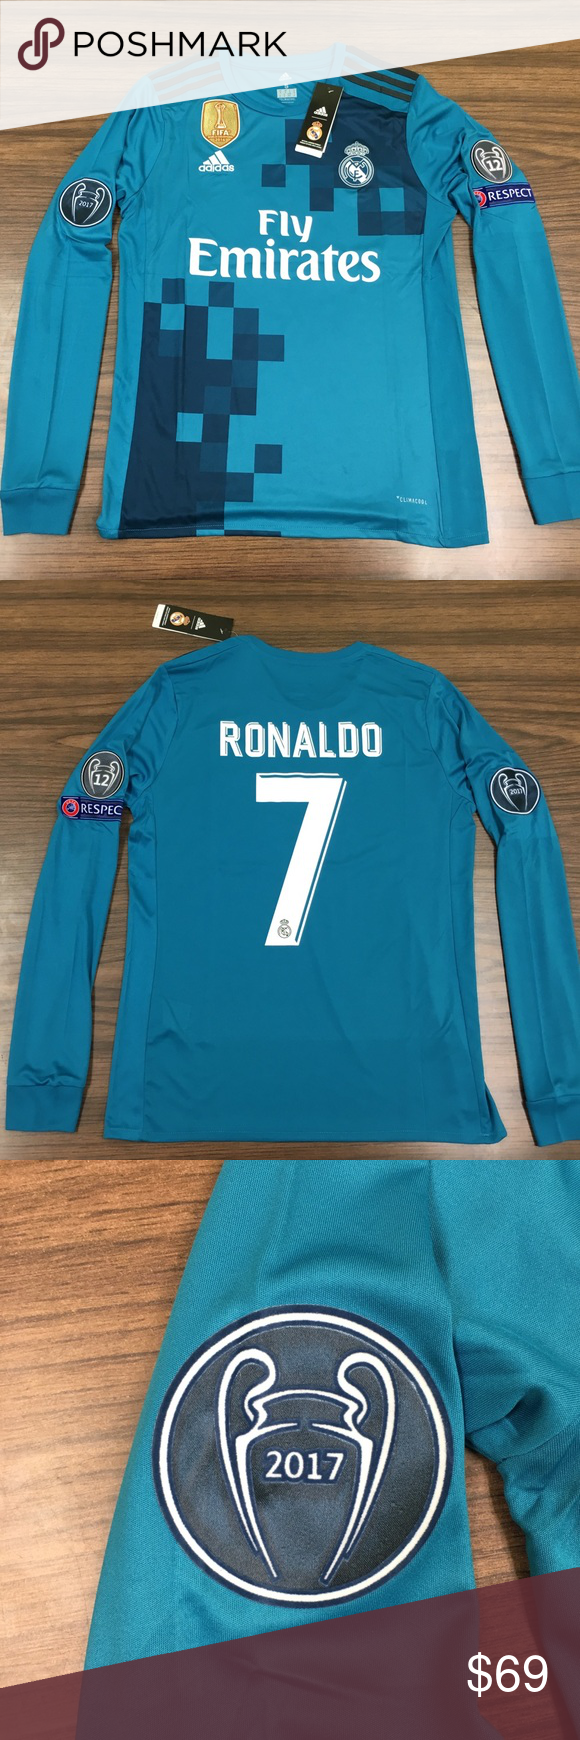 best loved b4663 afd74 Real Madrid Ronaldo Third long sleeve jersey 2017 Arguably ...